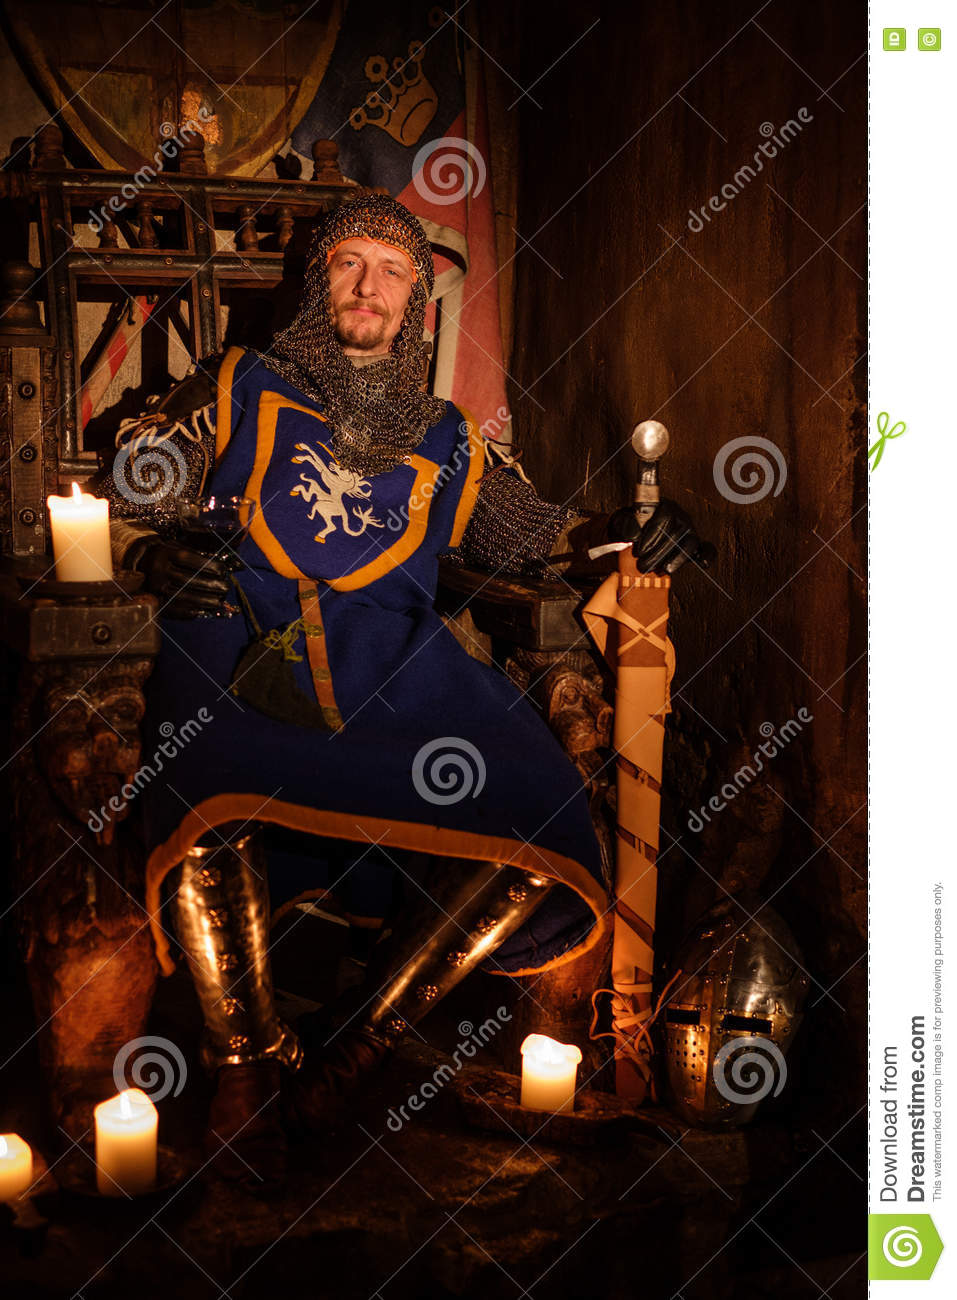 Medieval king on throne in ancient castle interior.